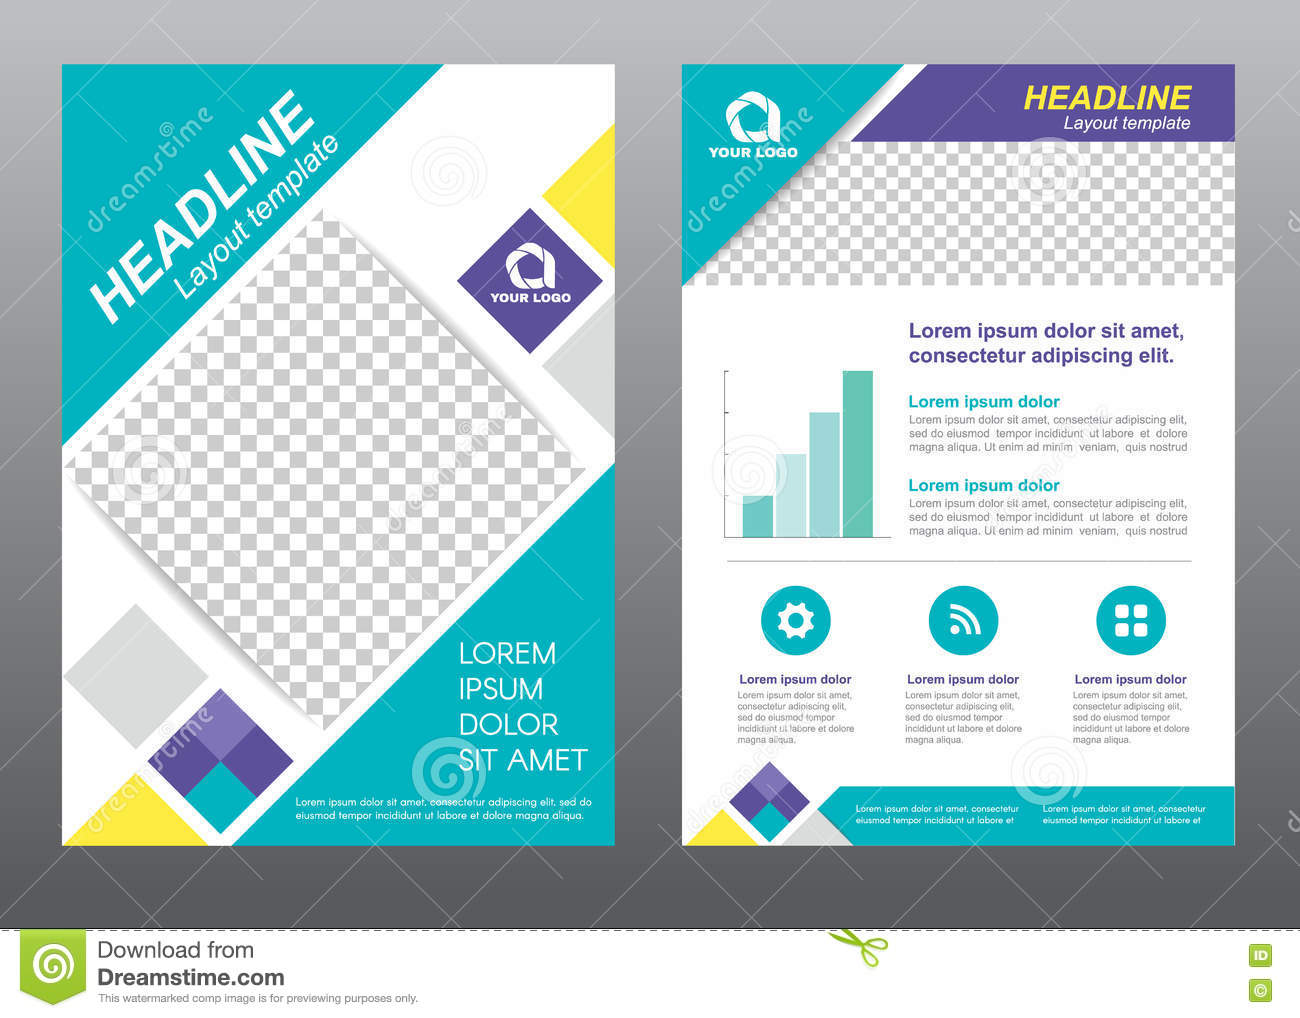 layout flyer template size a cover page blue tone vector design layout flyer template size a4 cover page diamond square blue purple yellow tone vector design royalty